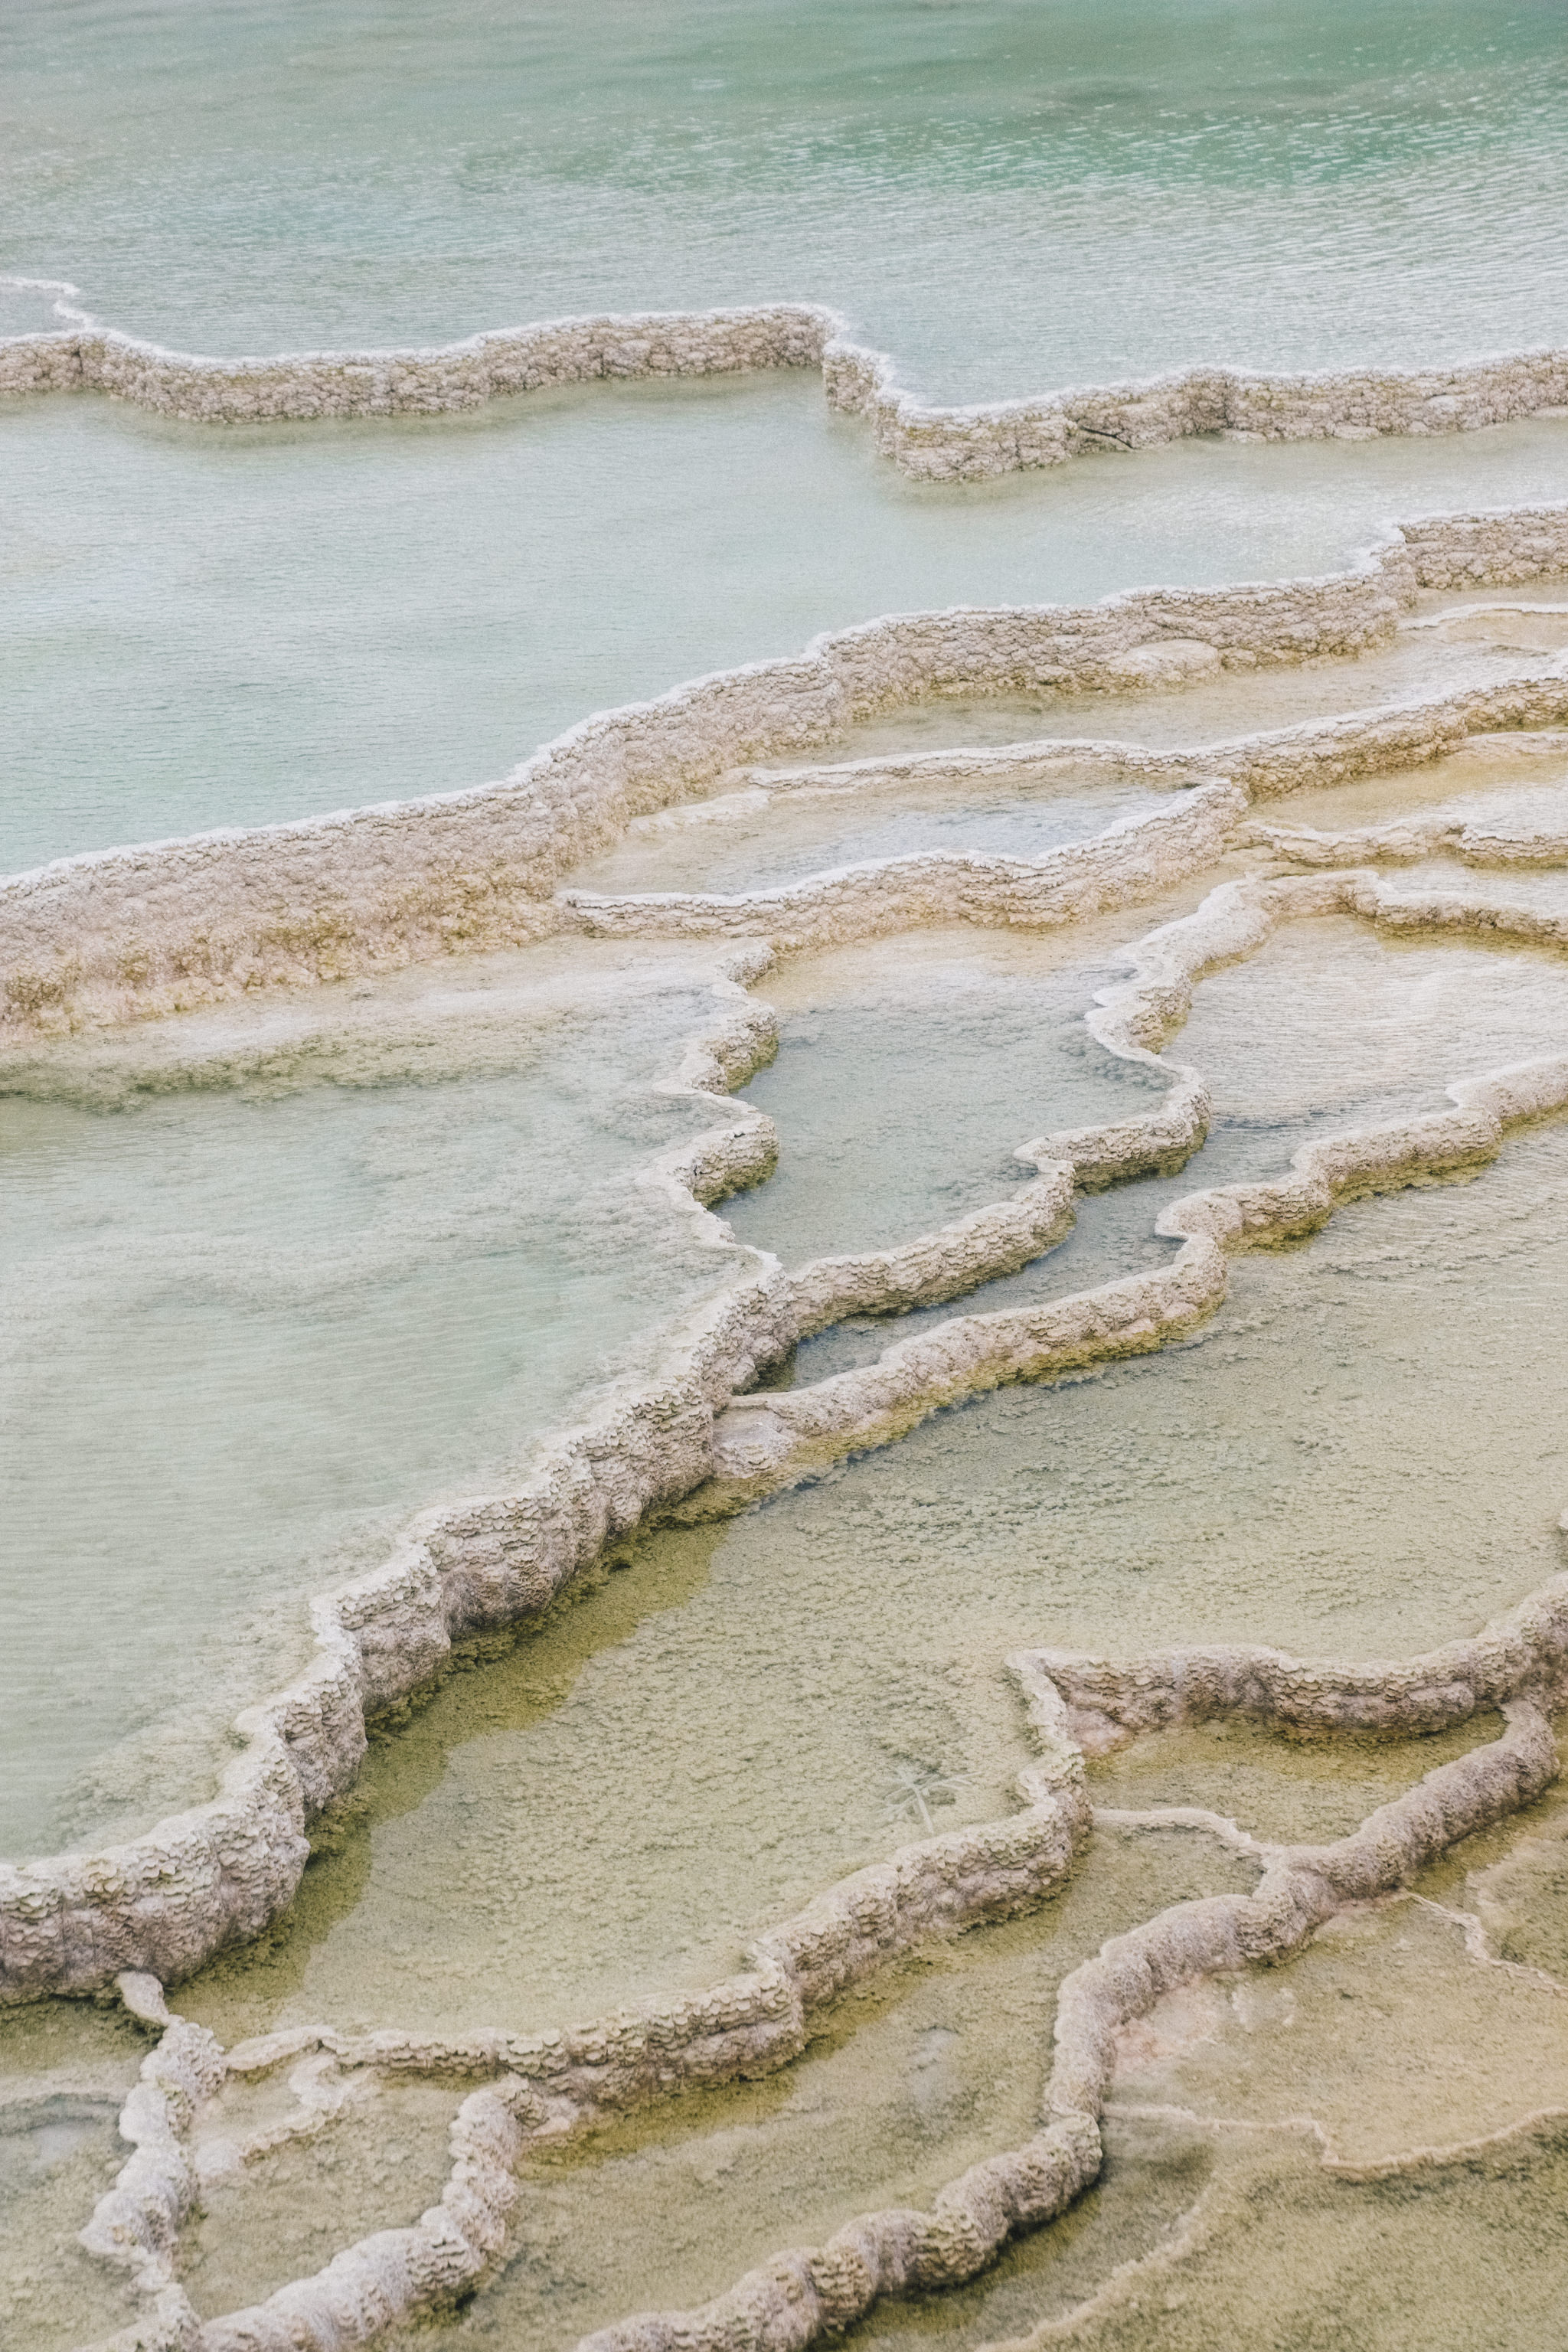 Abstract Images of Yellowstone's Colorful Landscape - She's So Bright, Travel, Landscape, Colors, Pastels, Shapes, Photography, Minerva Terraces, Mammoth Hot Springs